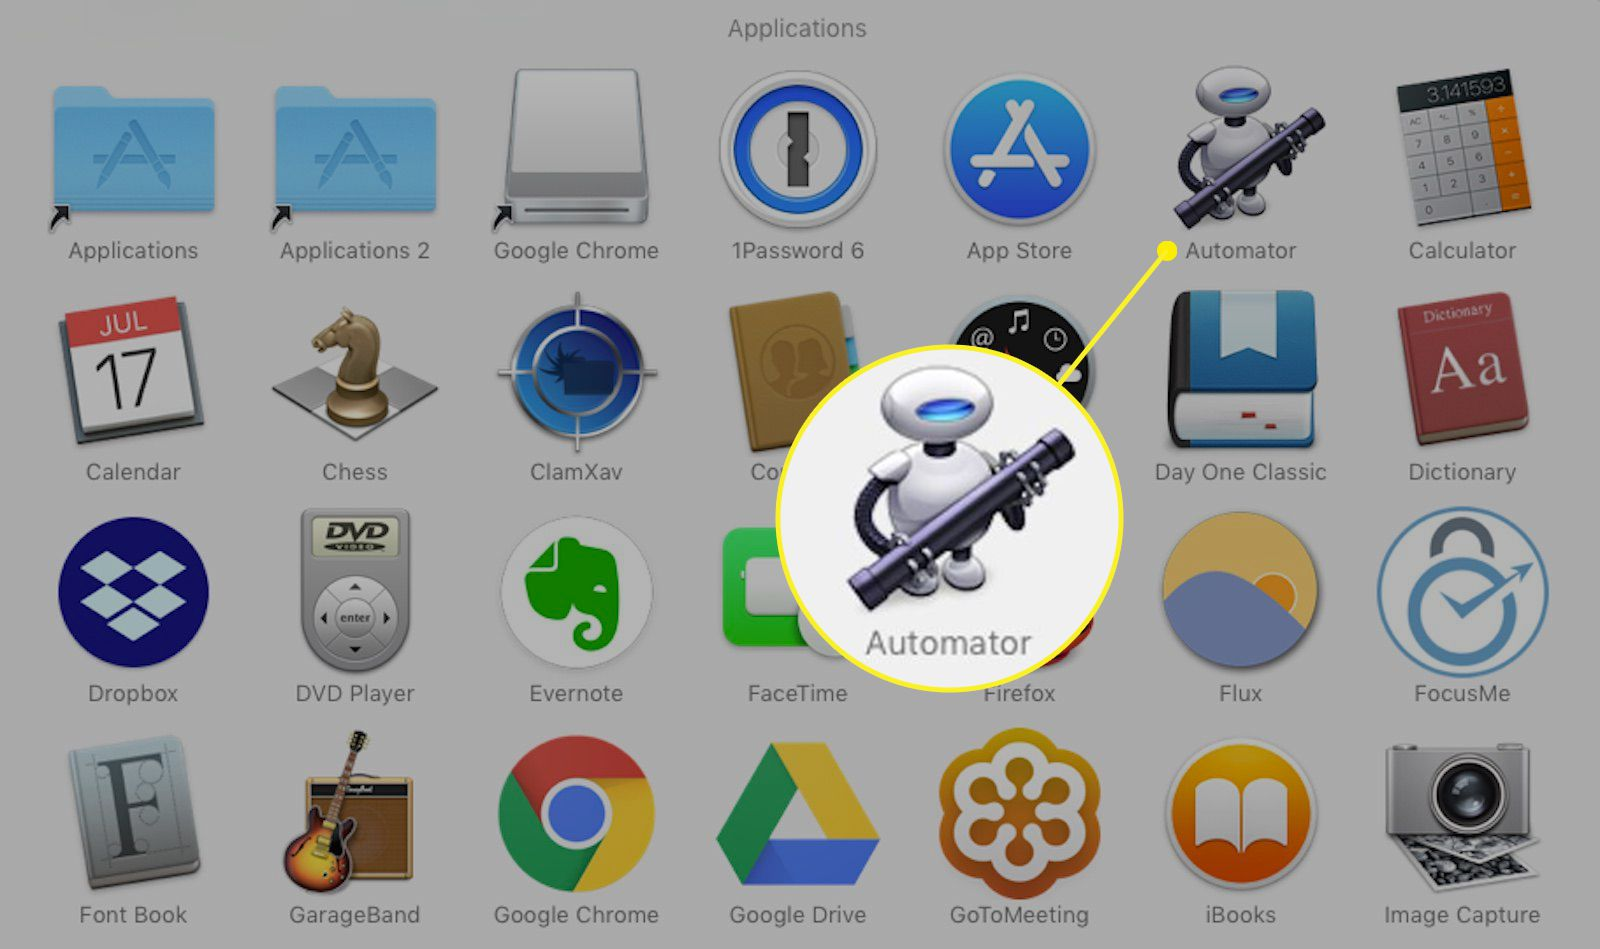 Applications folder on a Mac with Automator icon highlighted